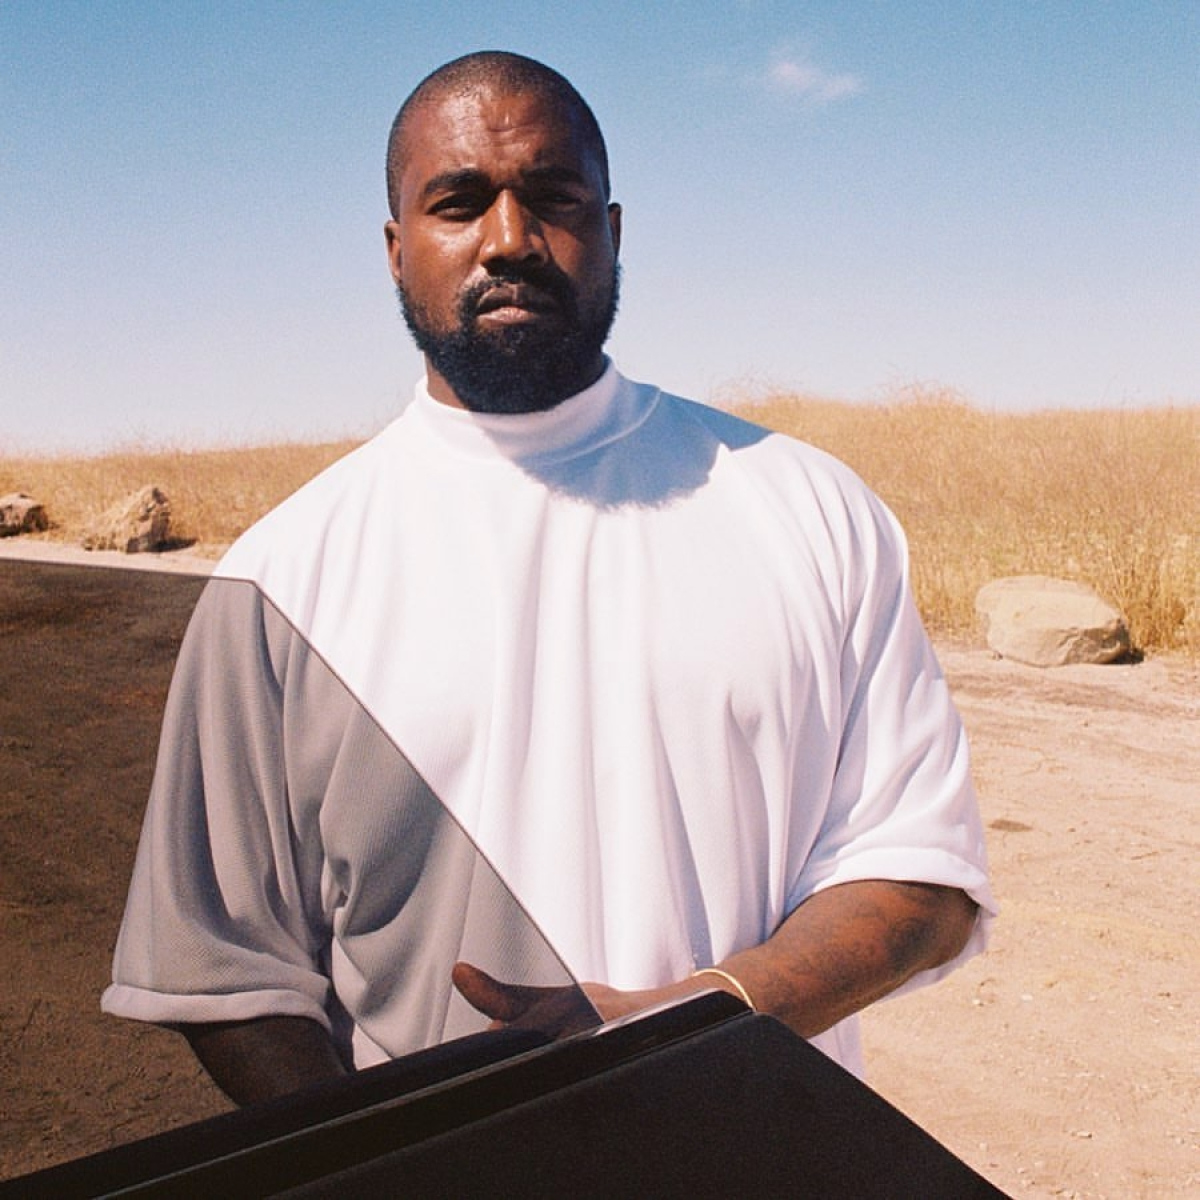 Kanye West addresses mental state and on-stage breakdown, says 'I am quite alright'